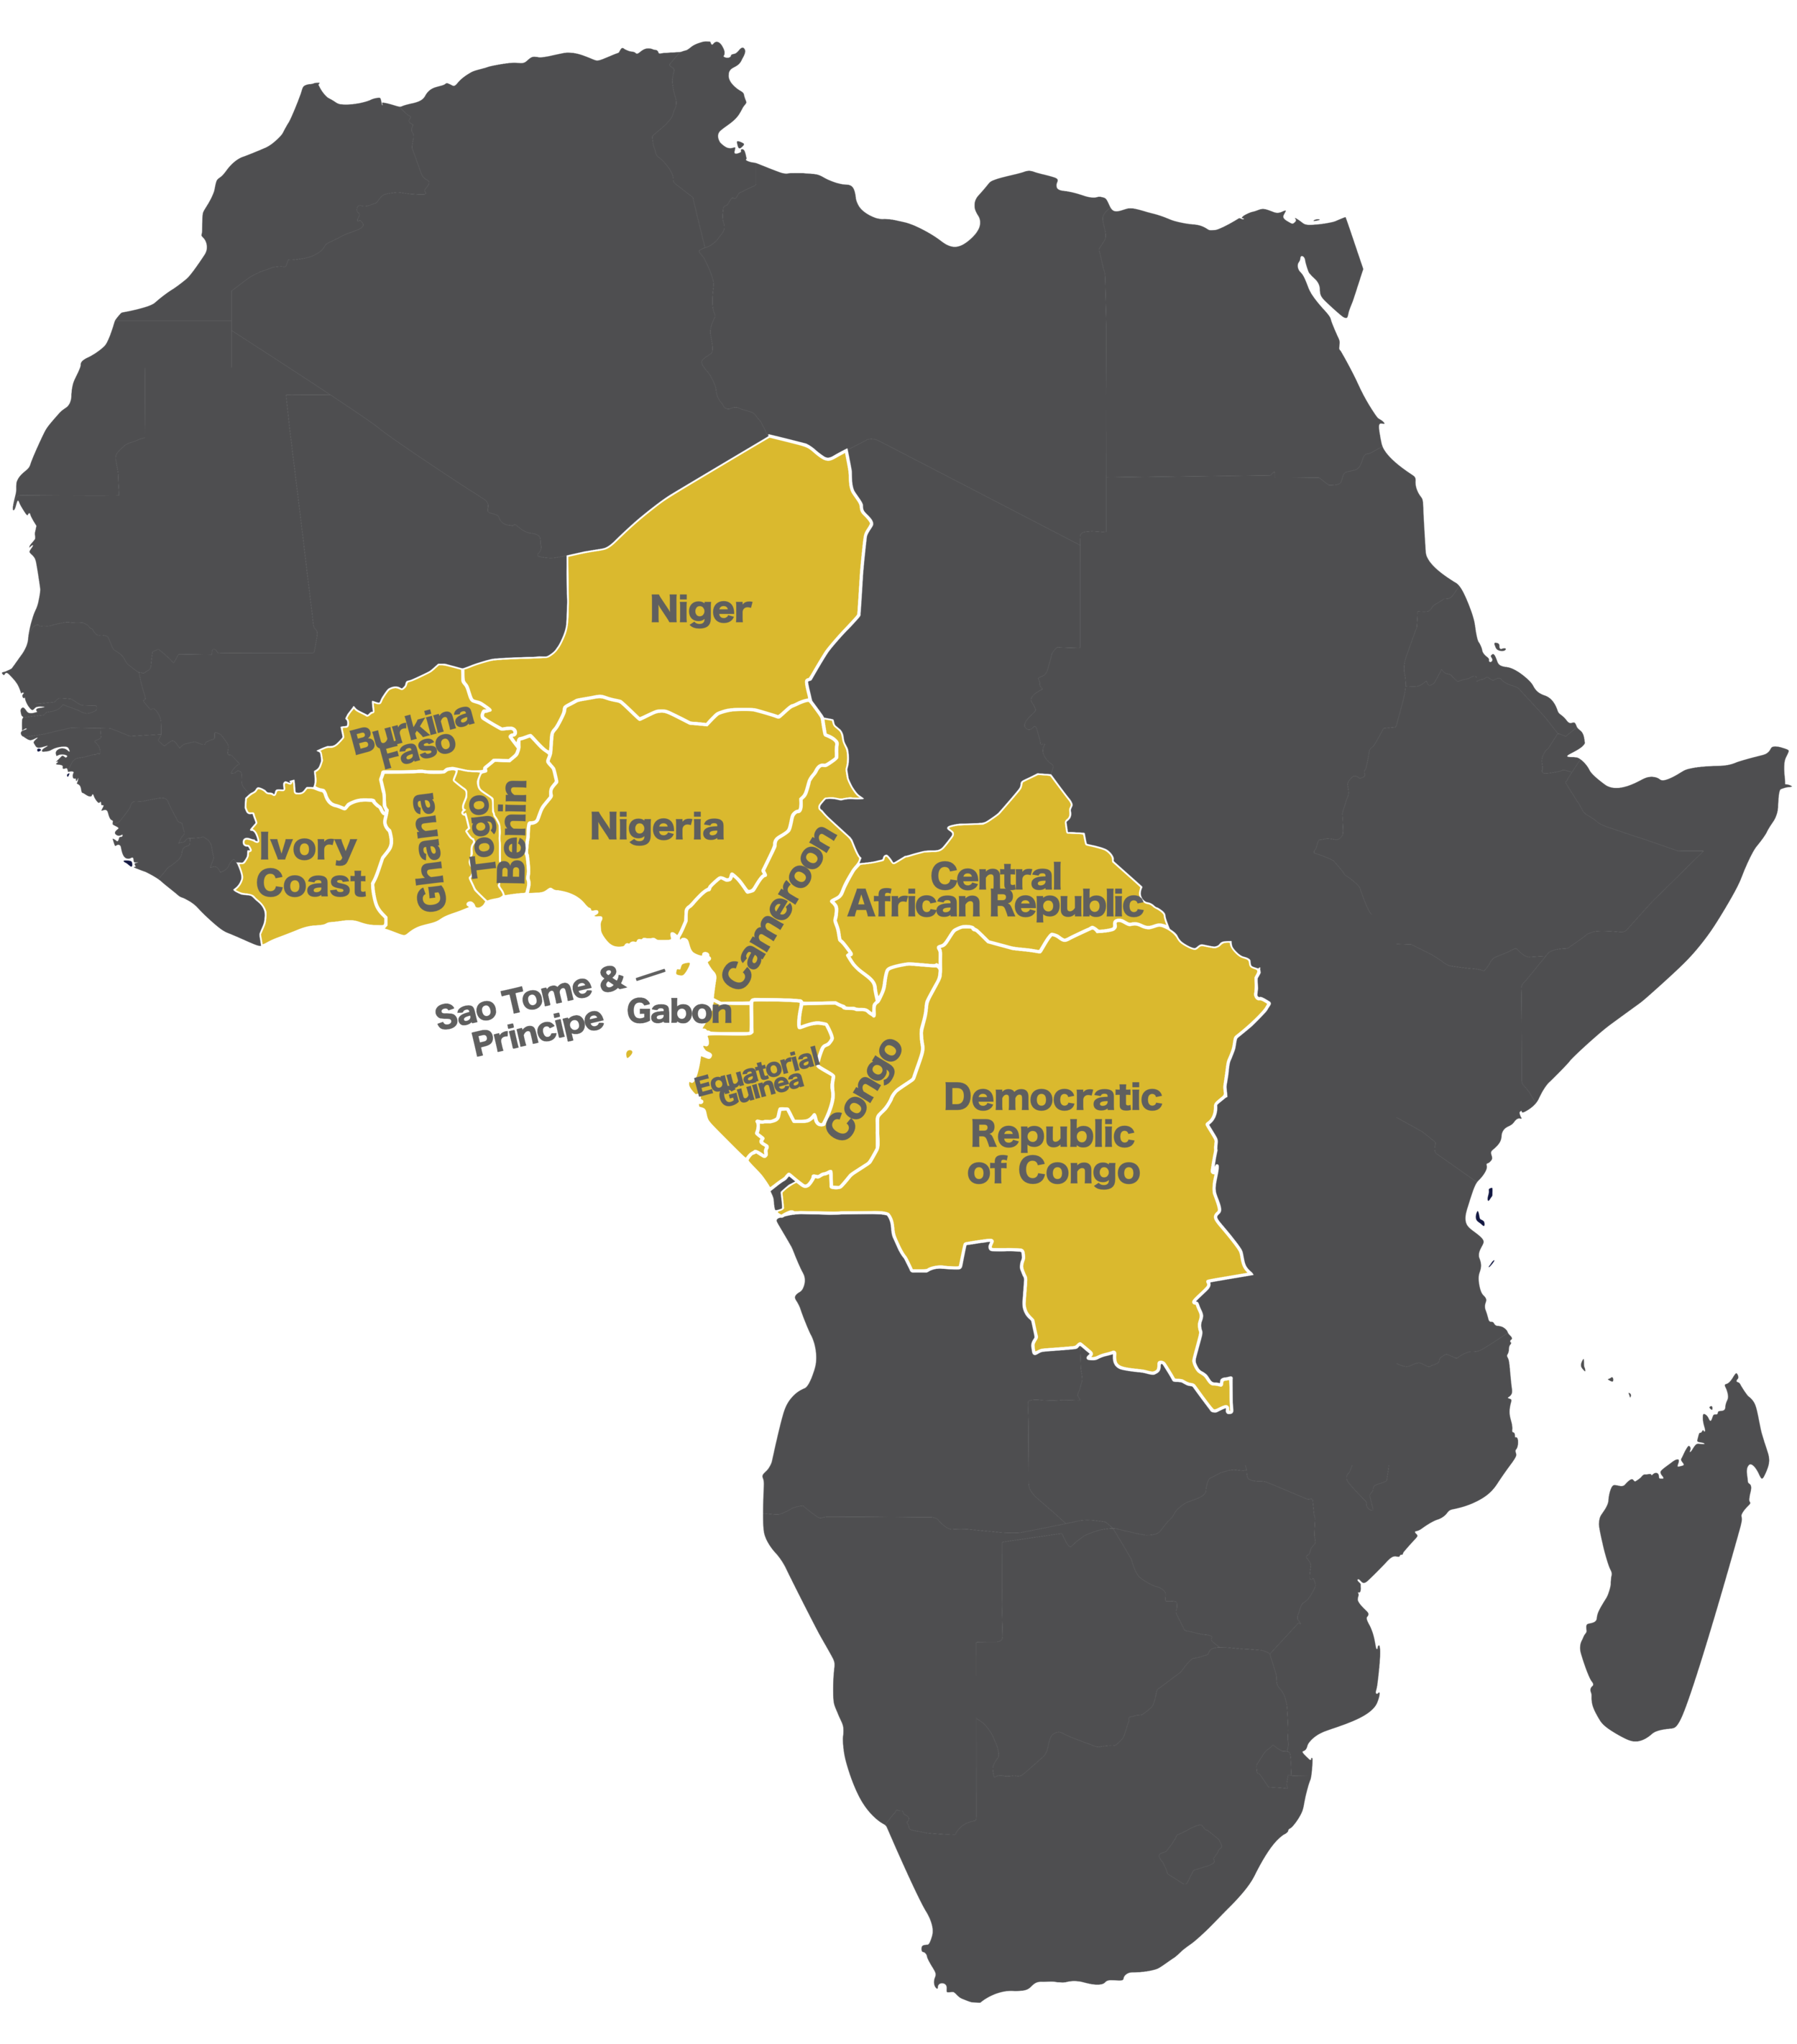 The Great Bend Cluster is a group of 14 countries across West and Central Africa. This 3 million square mile region is made up of over 434 million people which is half the population of all Sub-Saharan Africa. This region also contains some of the highest concentrations of lostness as over 40% of all the Unreached People Groups in Sub-Saharan Africa live in Great Bend. -